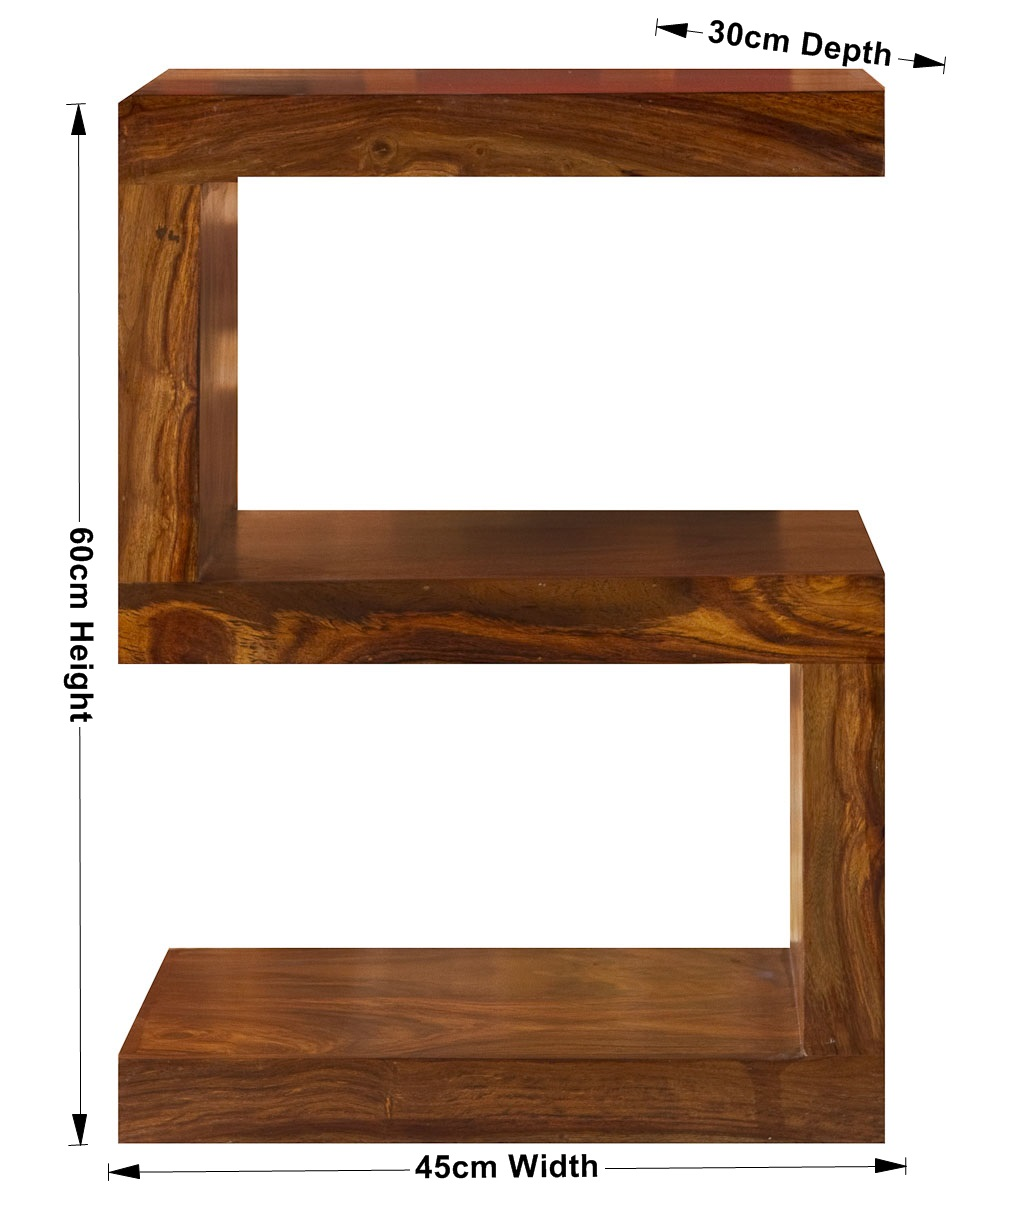 Wonderful image of Cube Petite Indian Sheesham Wood Modern S Shelf/Shelving/ Coffee Table with #6F3E1C color and 1024x1216 pixels